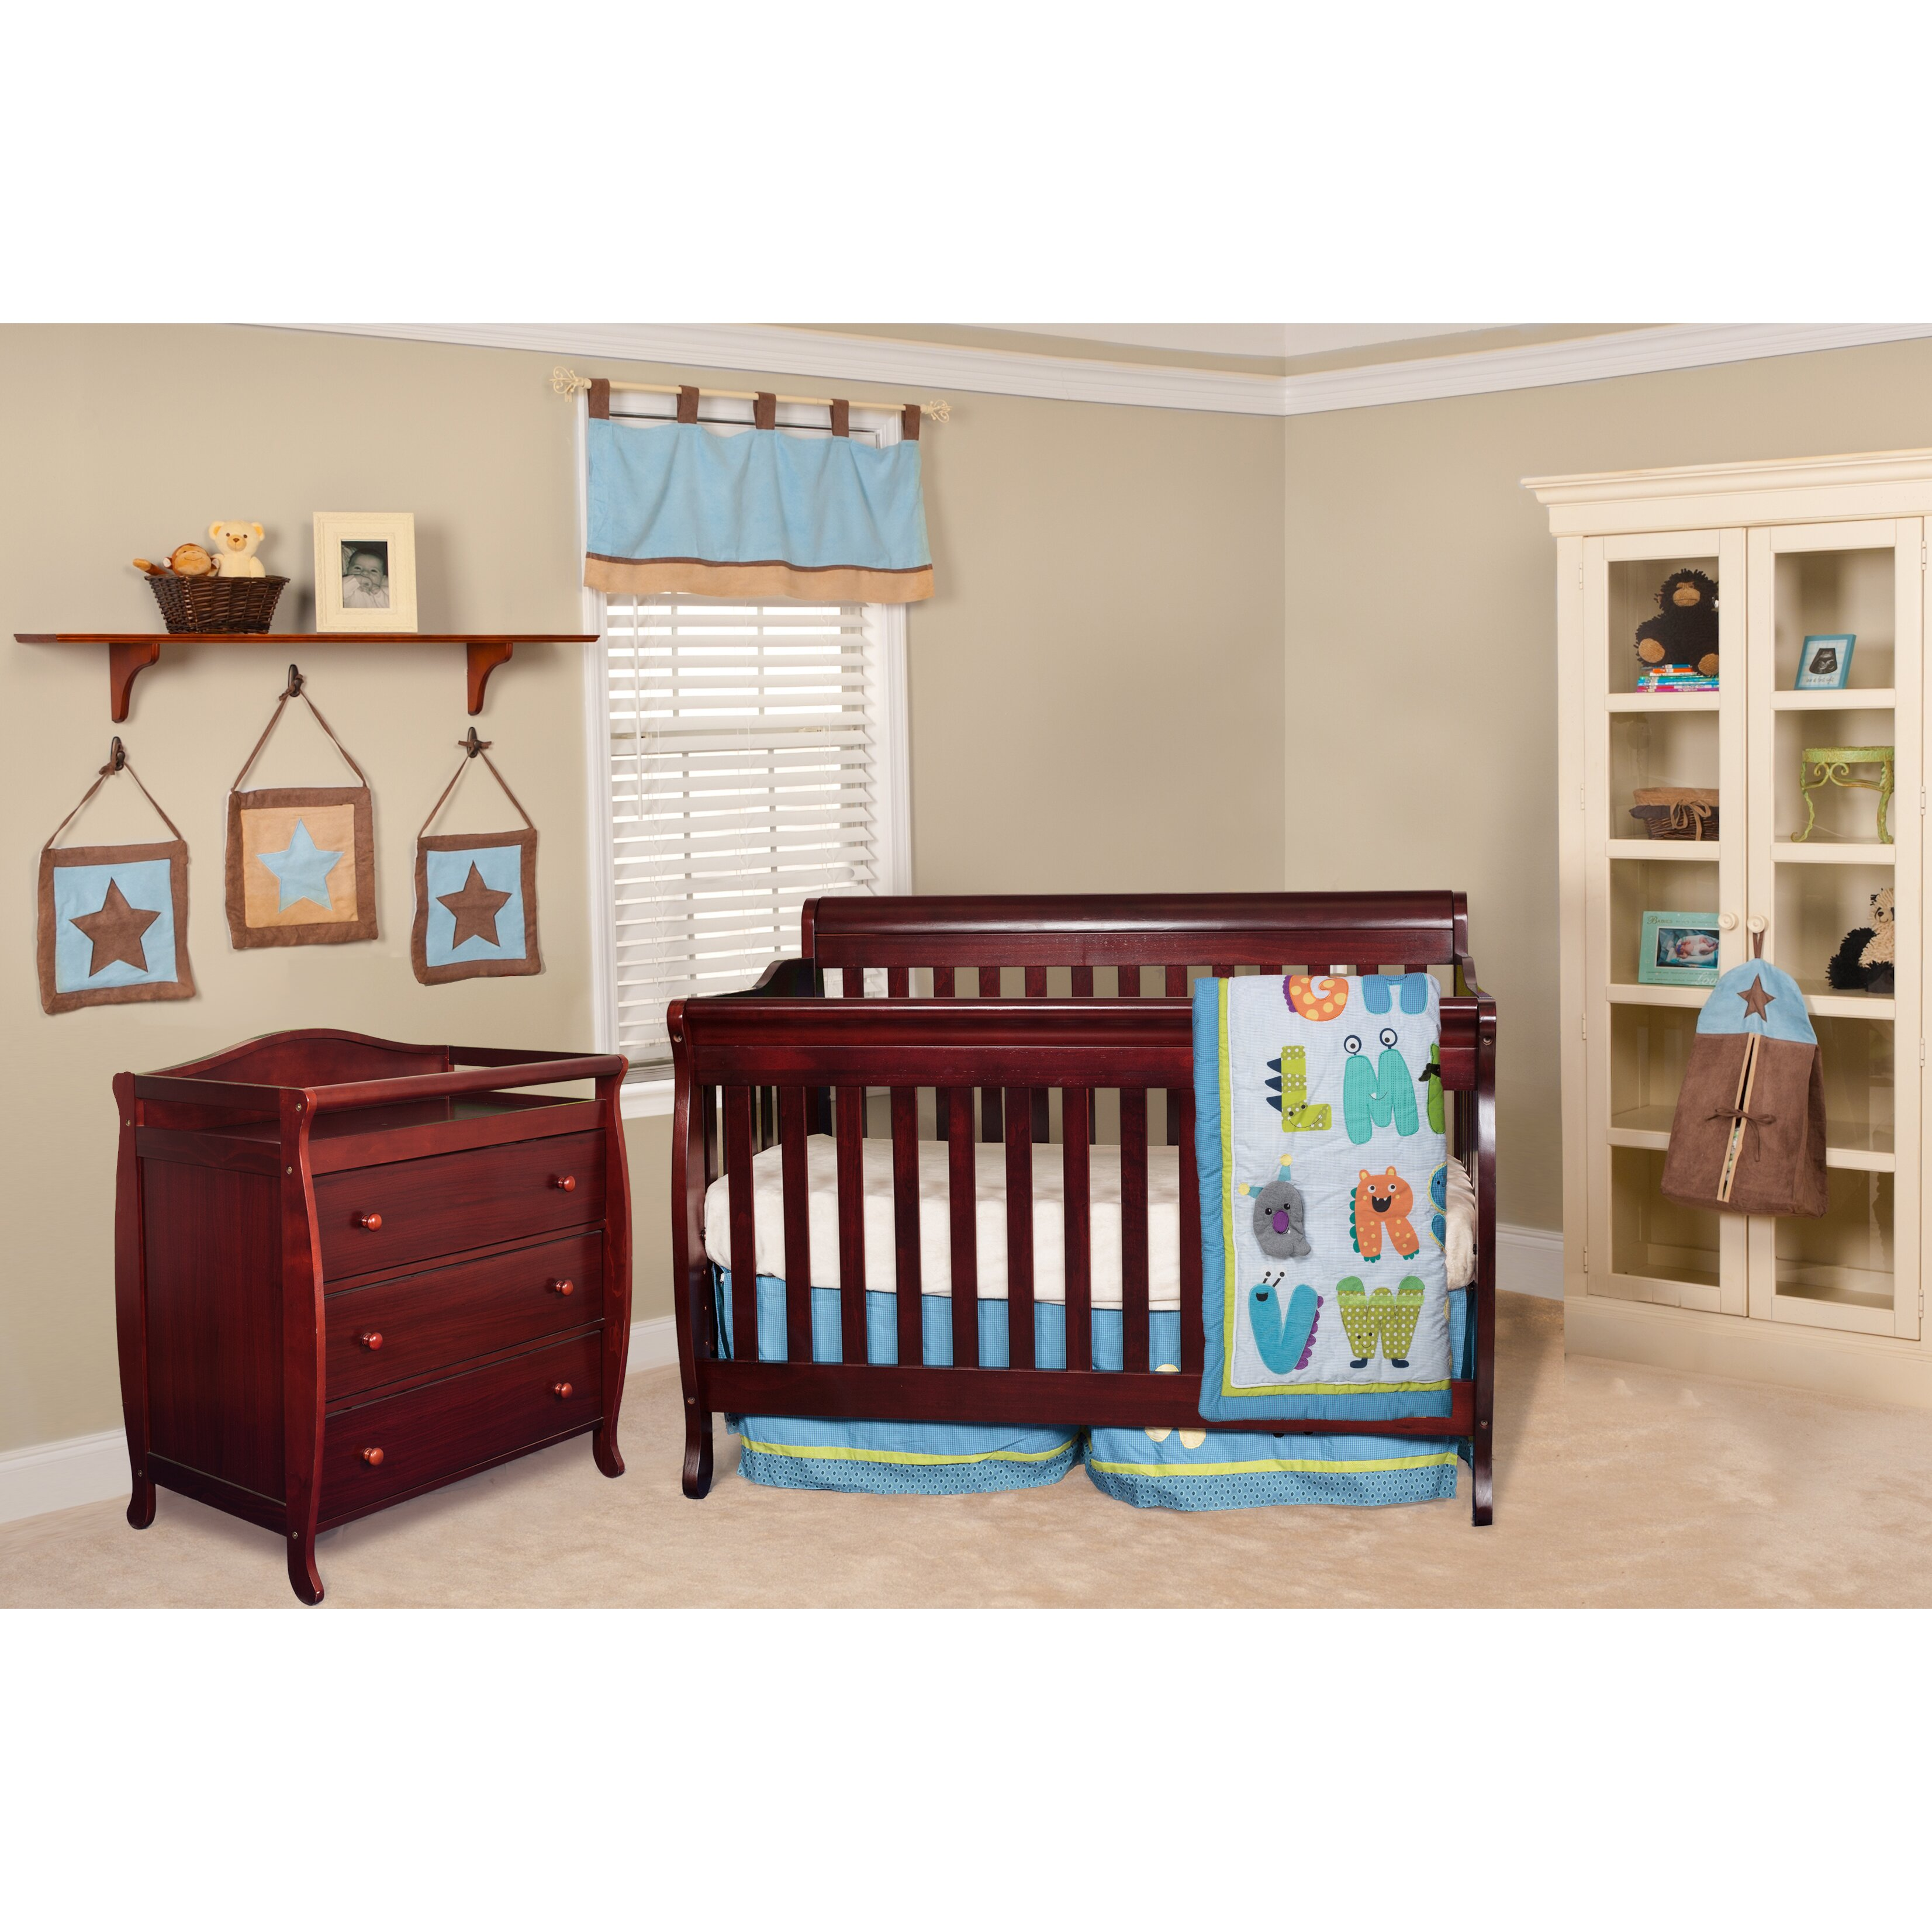 Harriet Bee Rollins 3 Piece Crib Bedding Set: AFG International Furniture Alice Grace 2 Piece